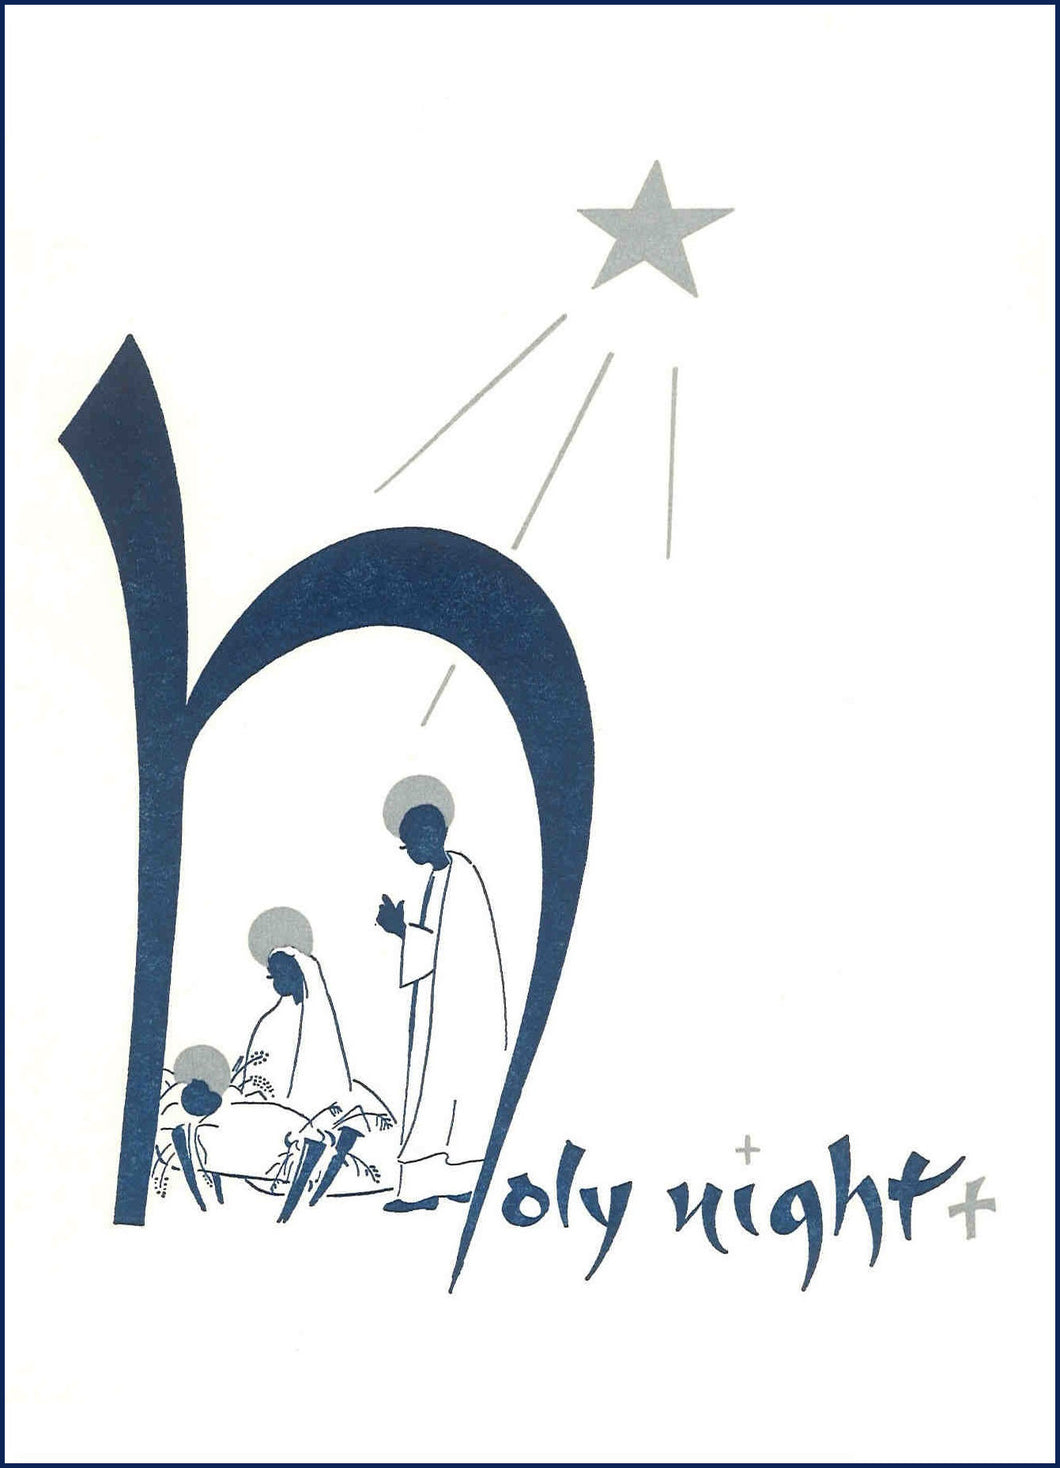 C13 Pack 5 Christmas Cards (Holy Night)